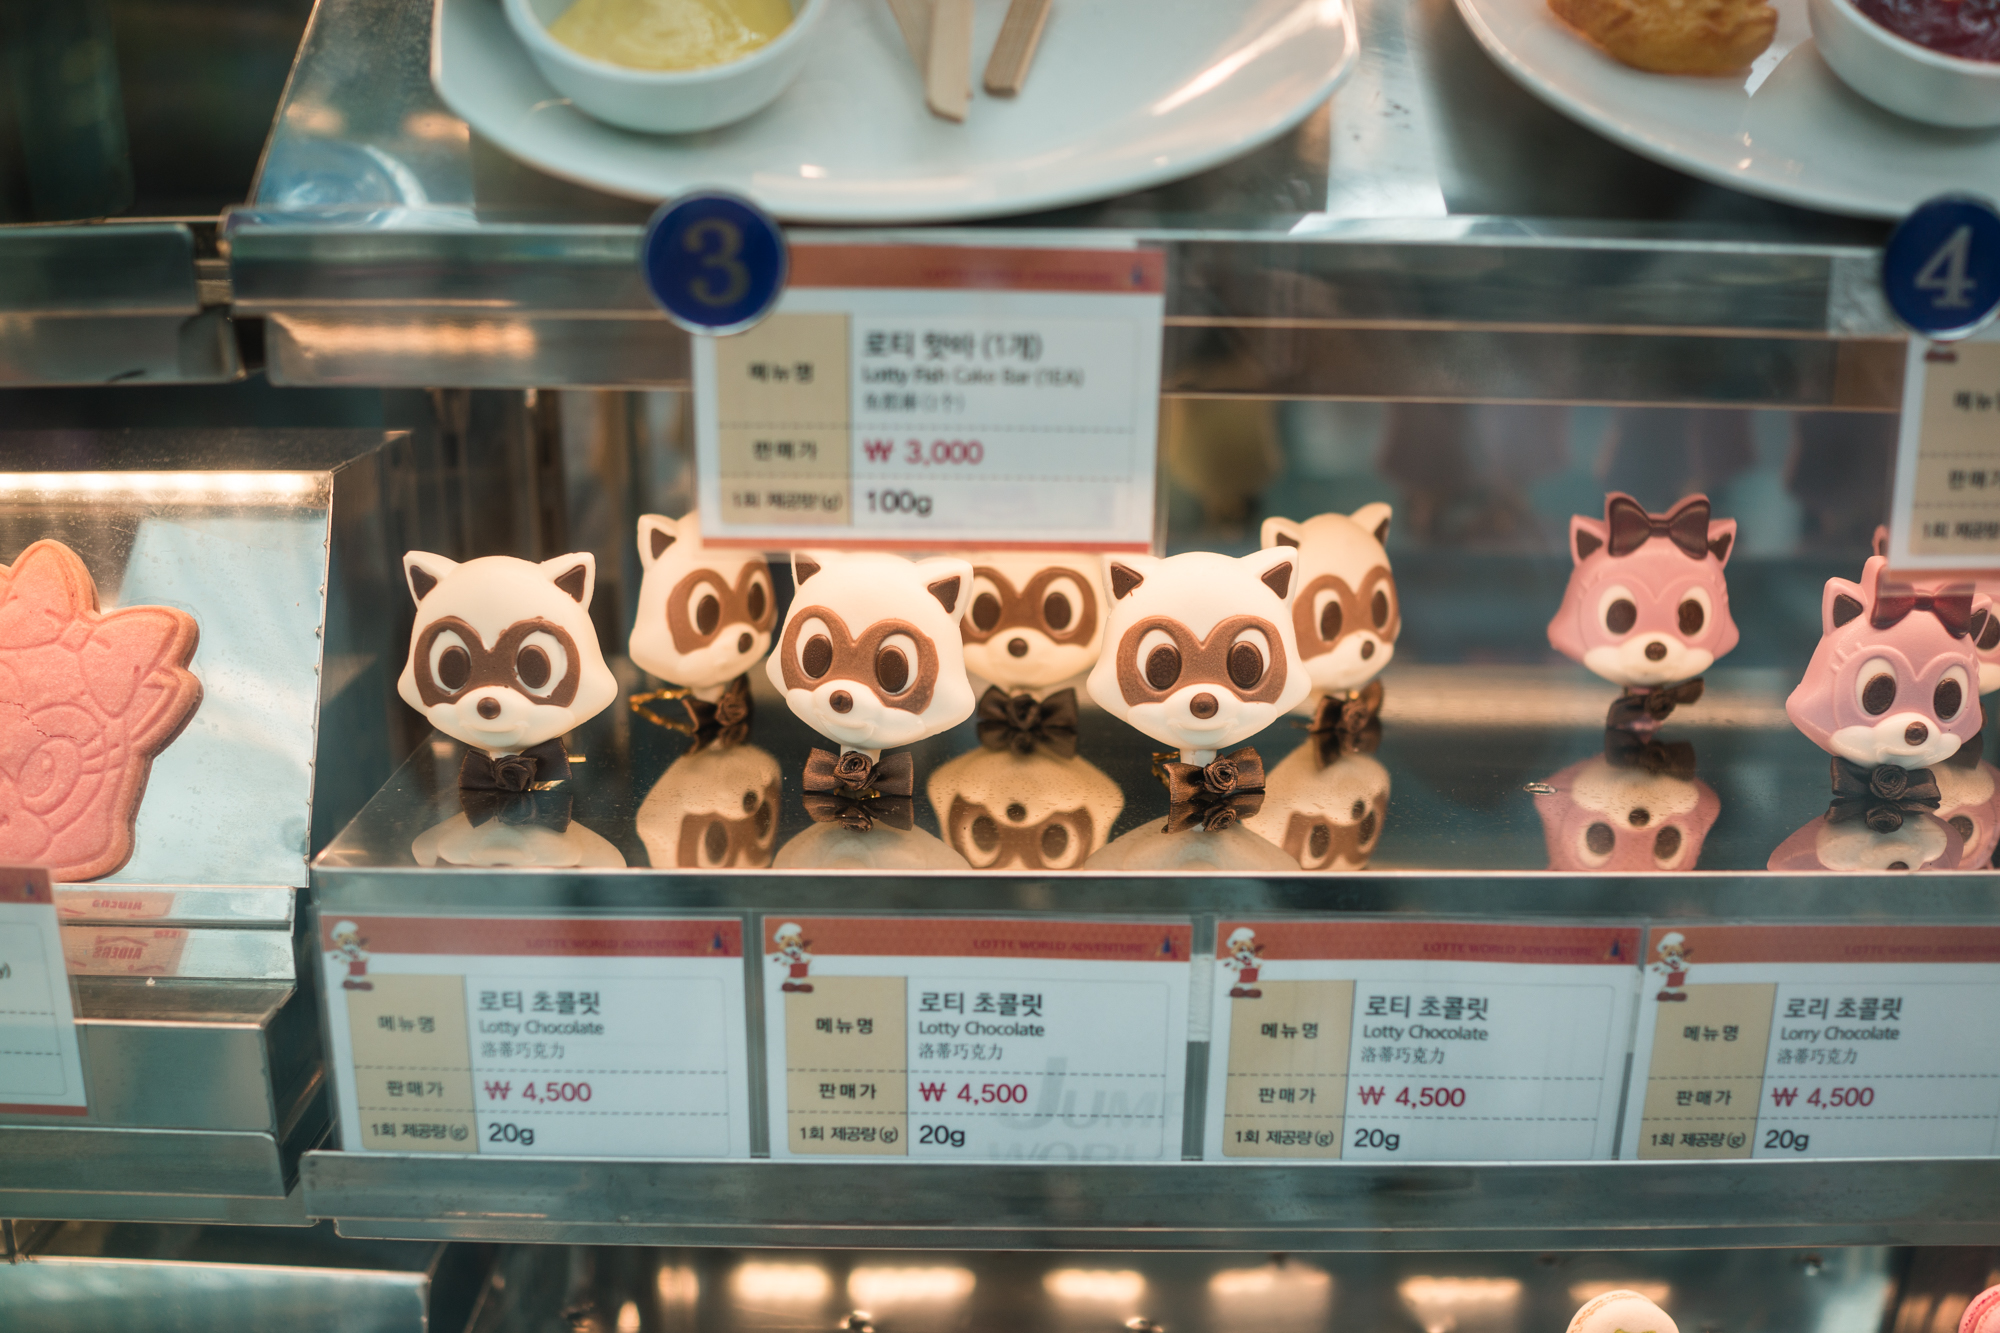 Raccoon Shaped Treats at Lotte World